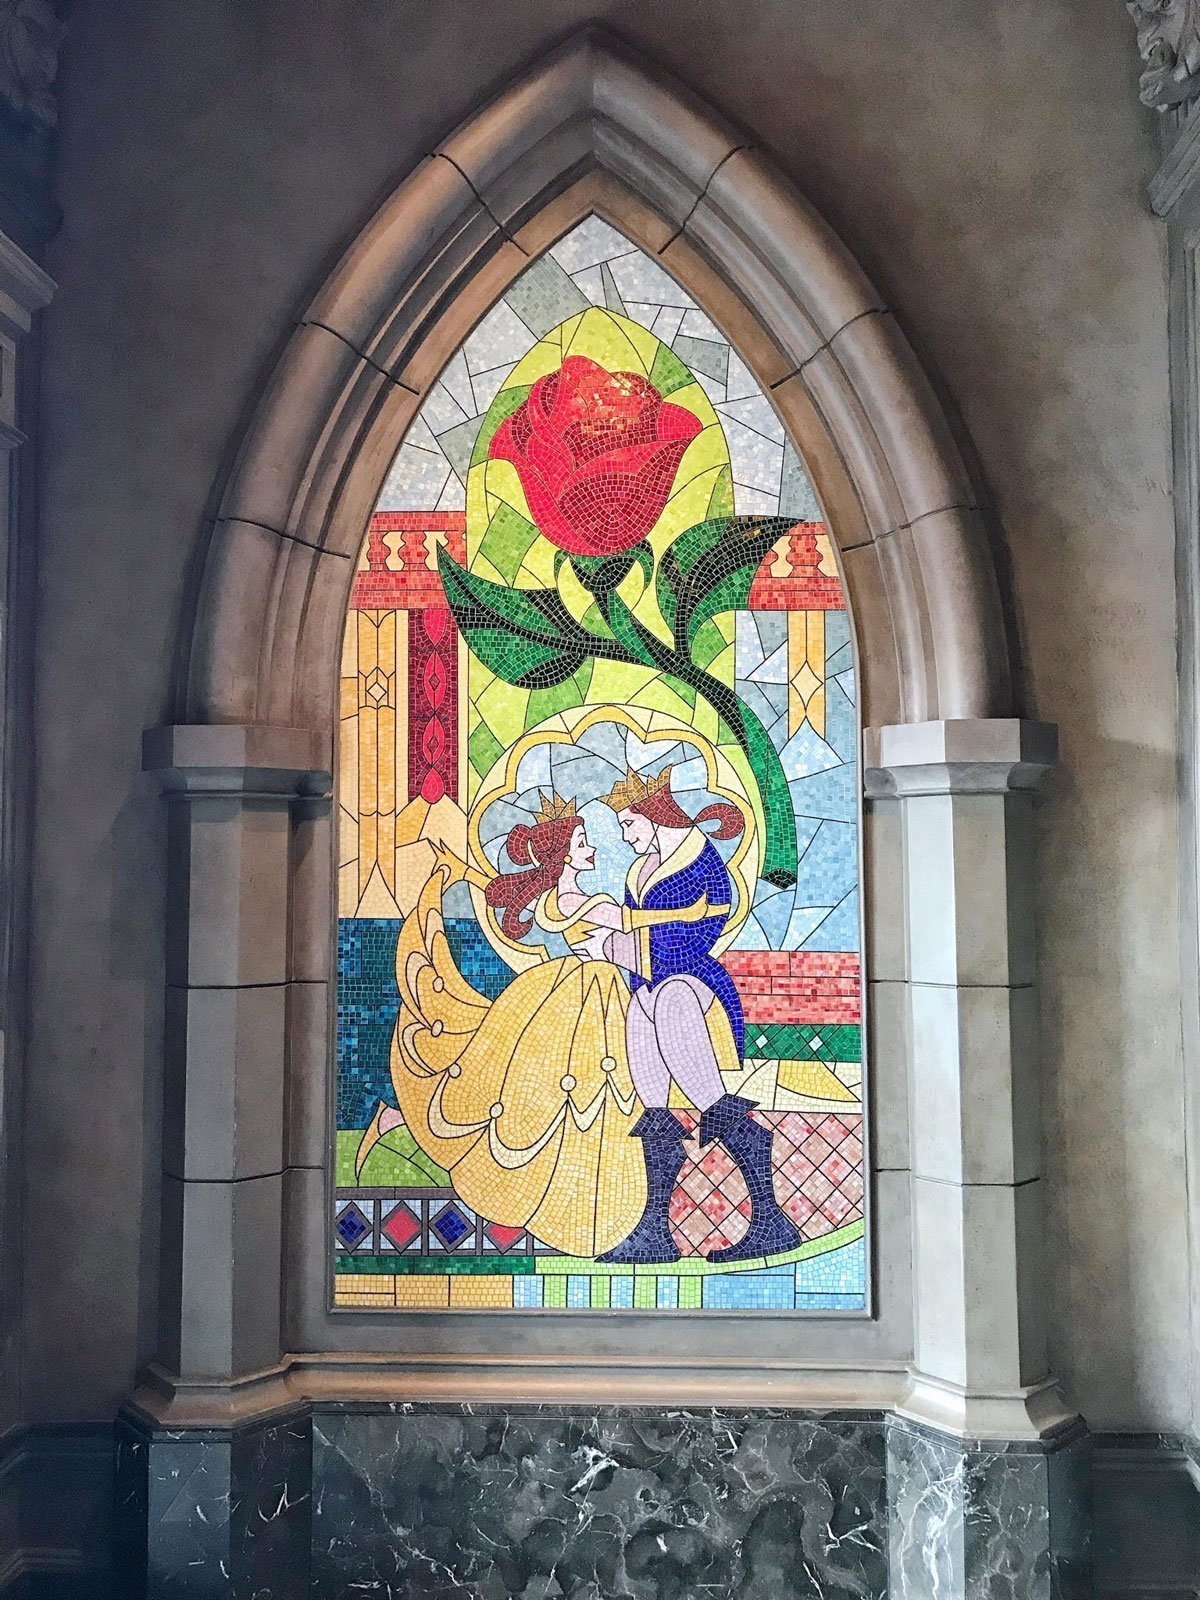 Disney's Magic Kingdom Be Our Guest restaurant stained glass